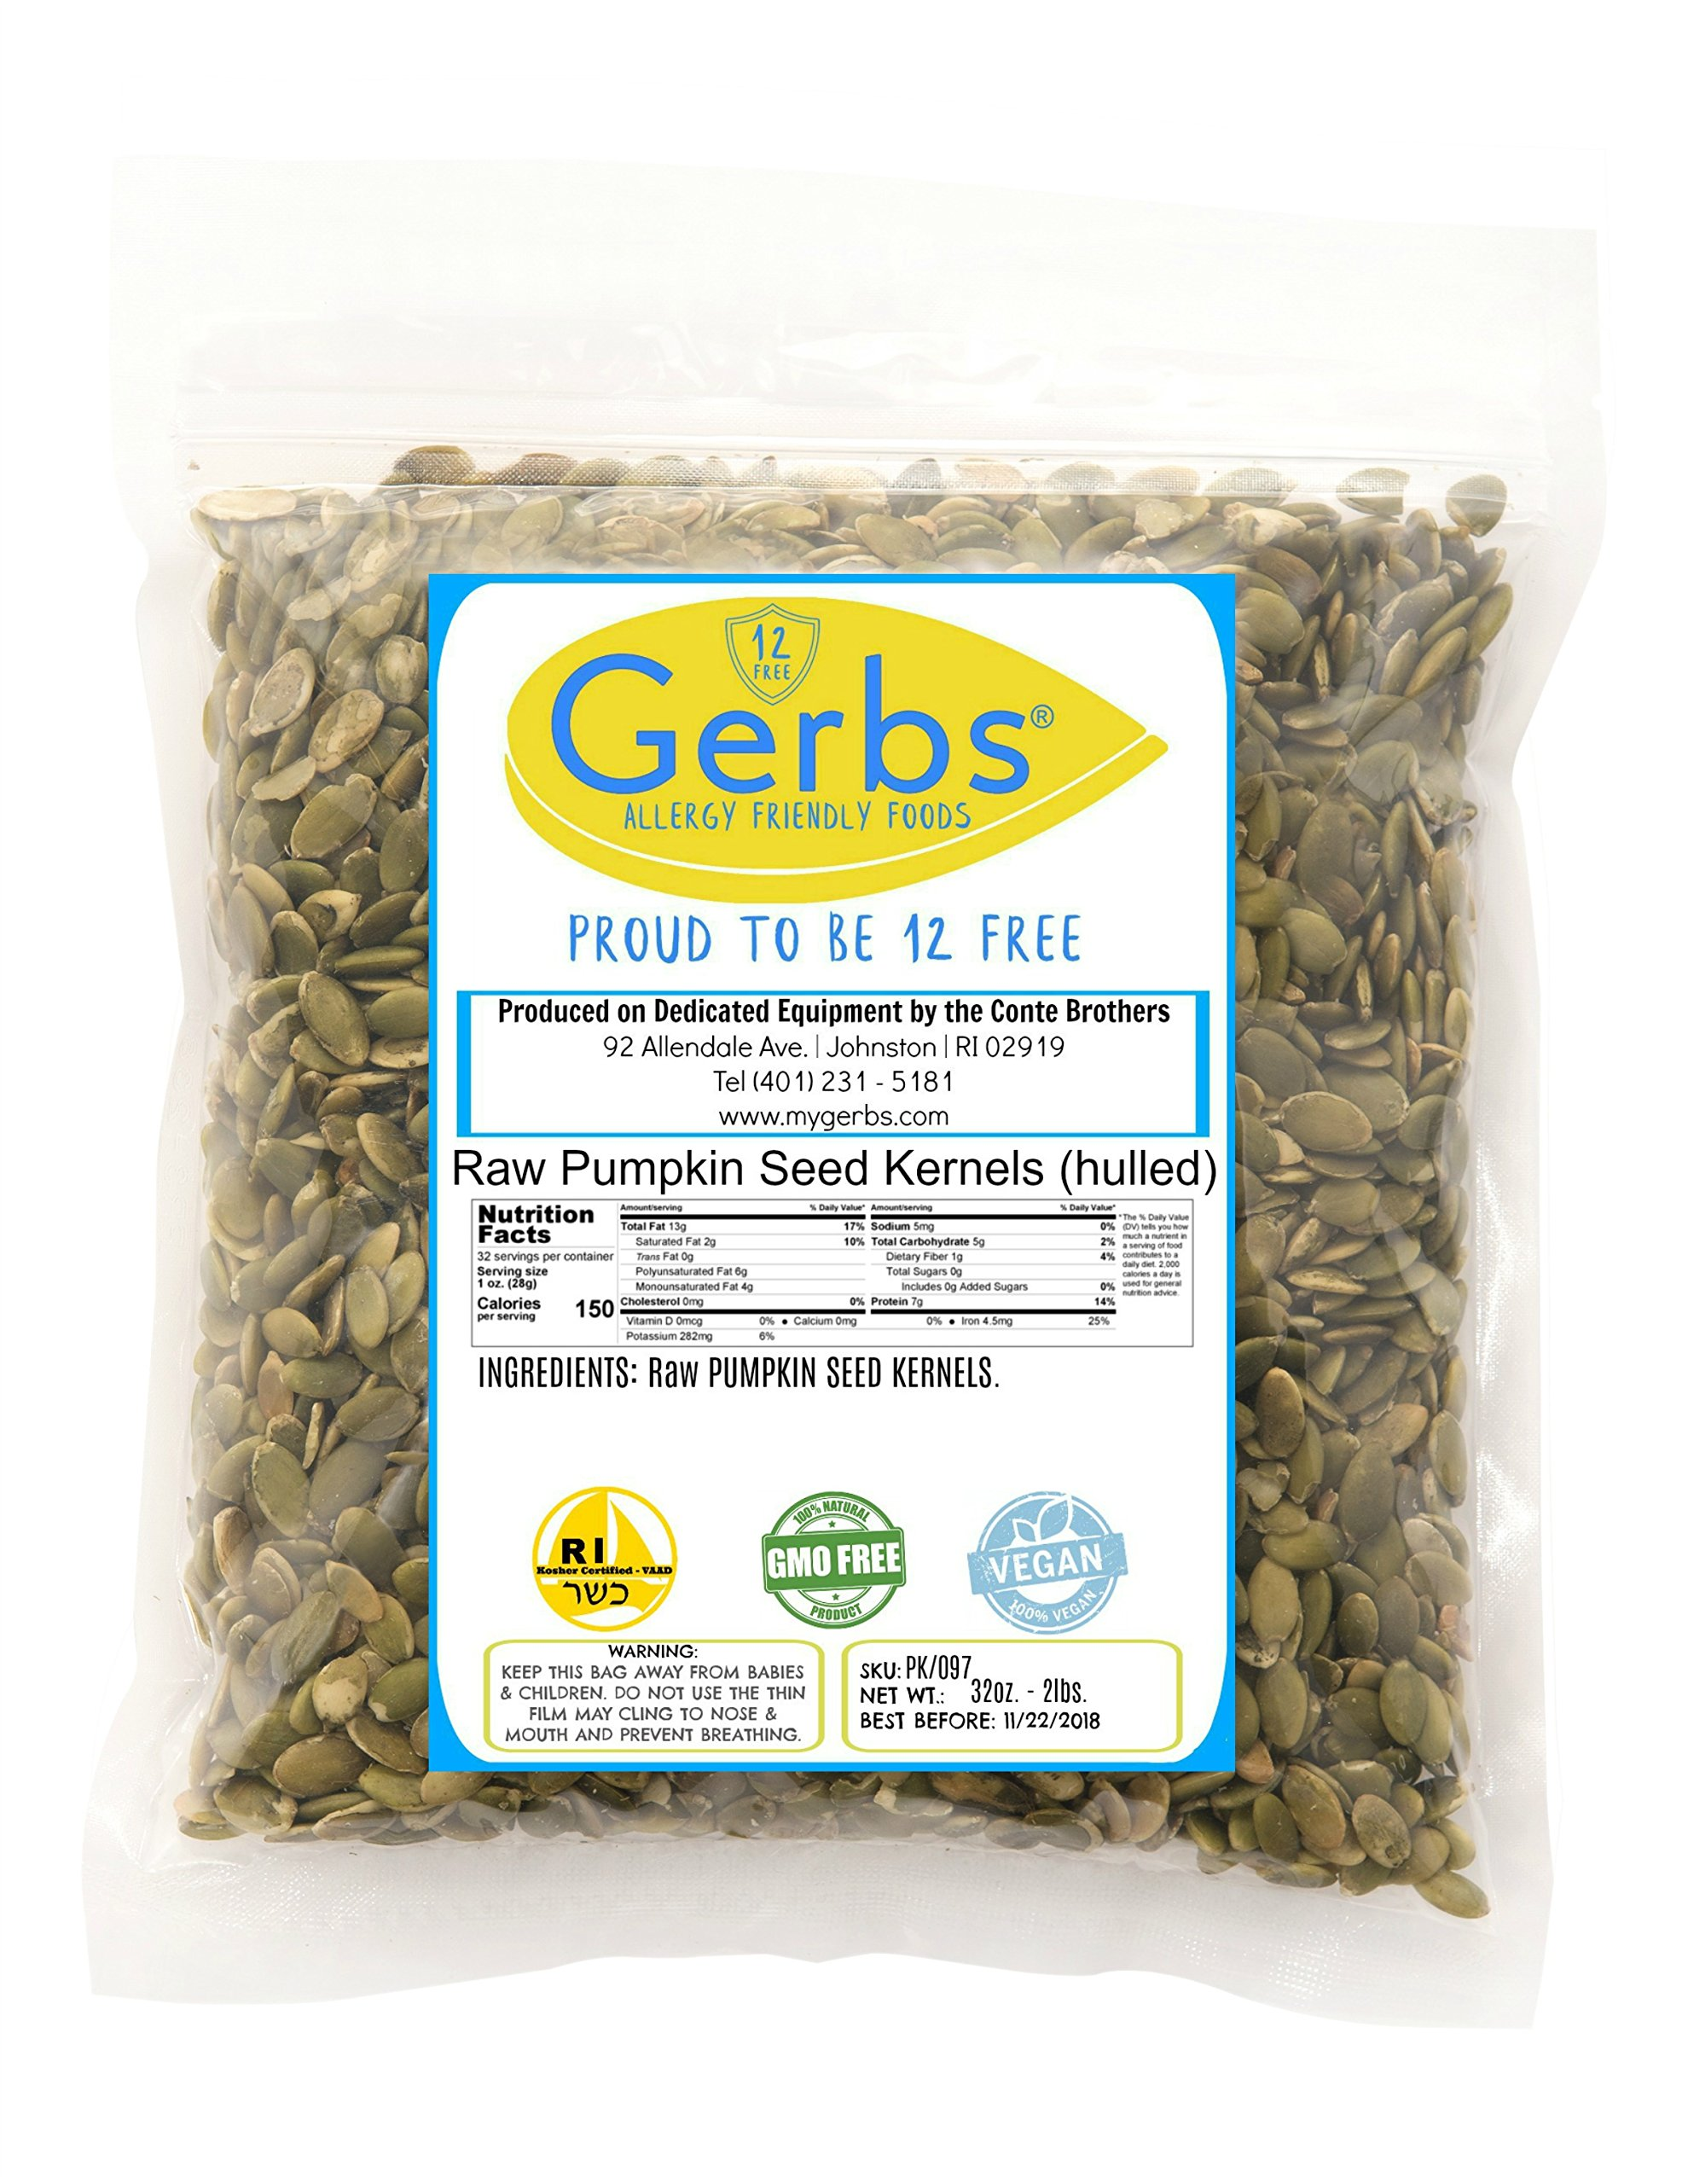 Raw Pumpkin Seed Kernels, 2 LBS by Gerbs – Top 12 Food Allergy Free & NON GMO - Vegan & Kosher - Premium Quality Grown in Mexico